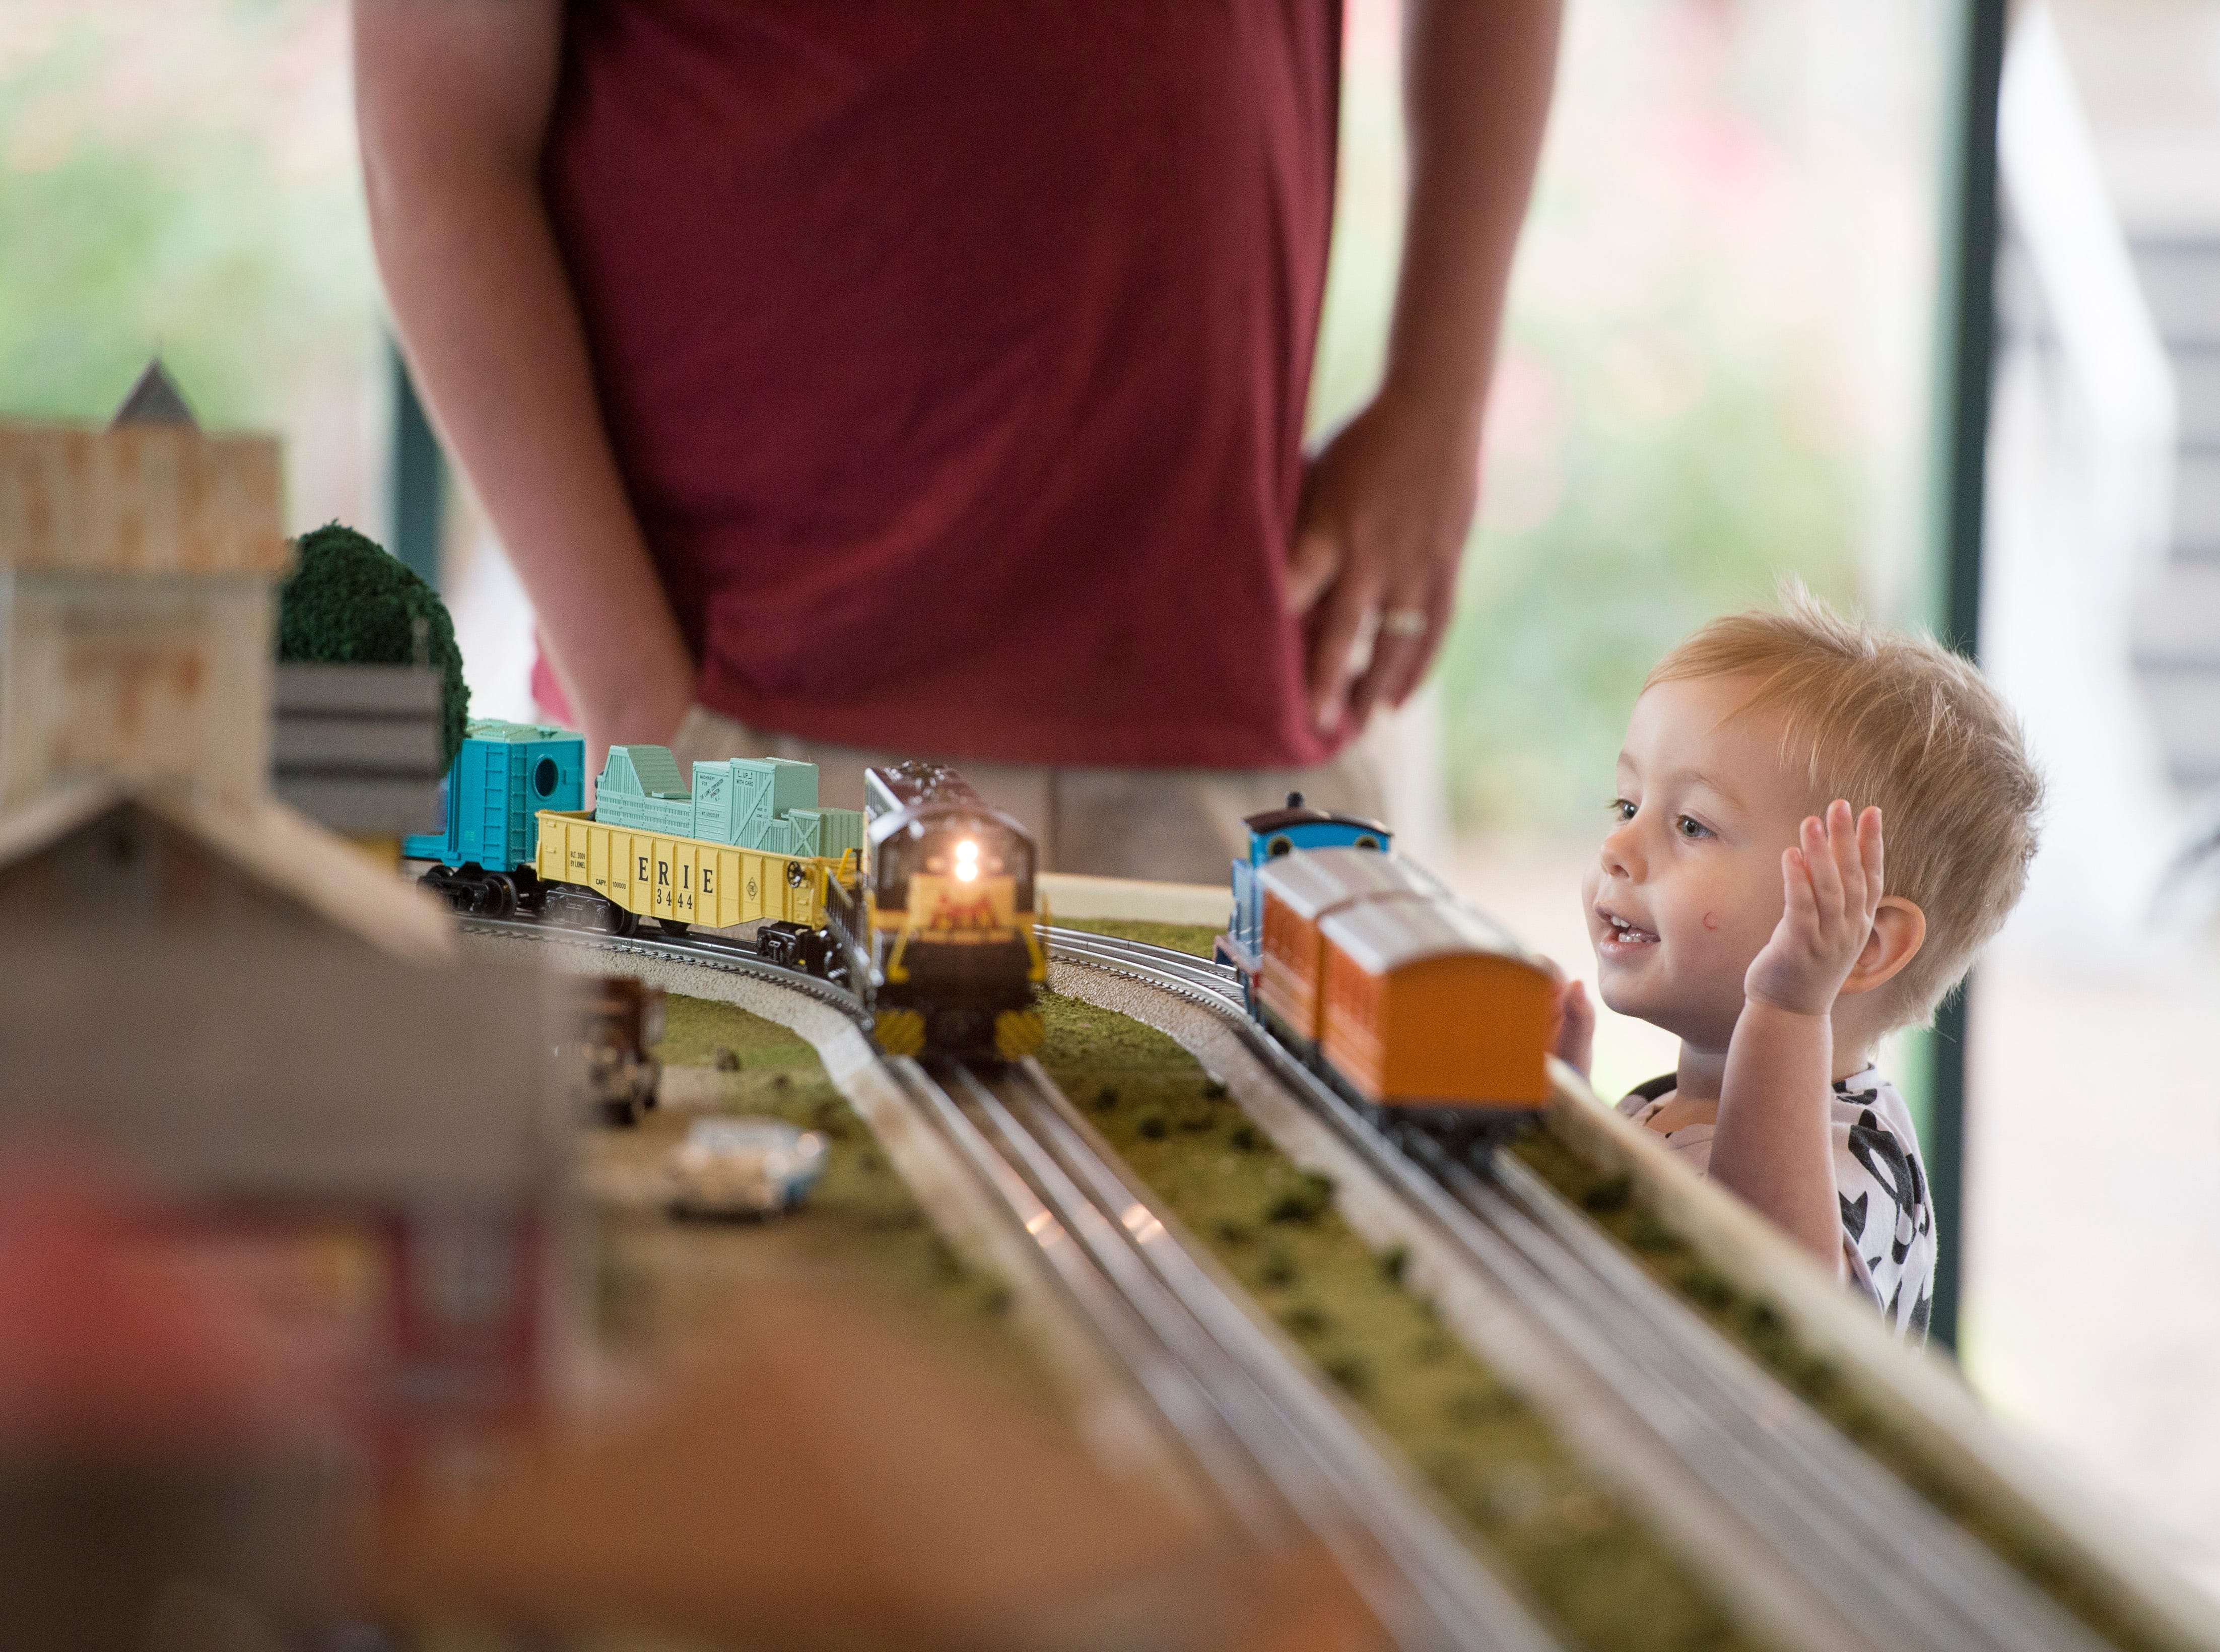 Josiah Cox, 2, gets excited as model trains go around the track during the Local Loco Model Railroad Club show at the Evansville Pagoda Sept. 22, 2018.